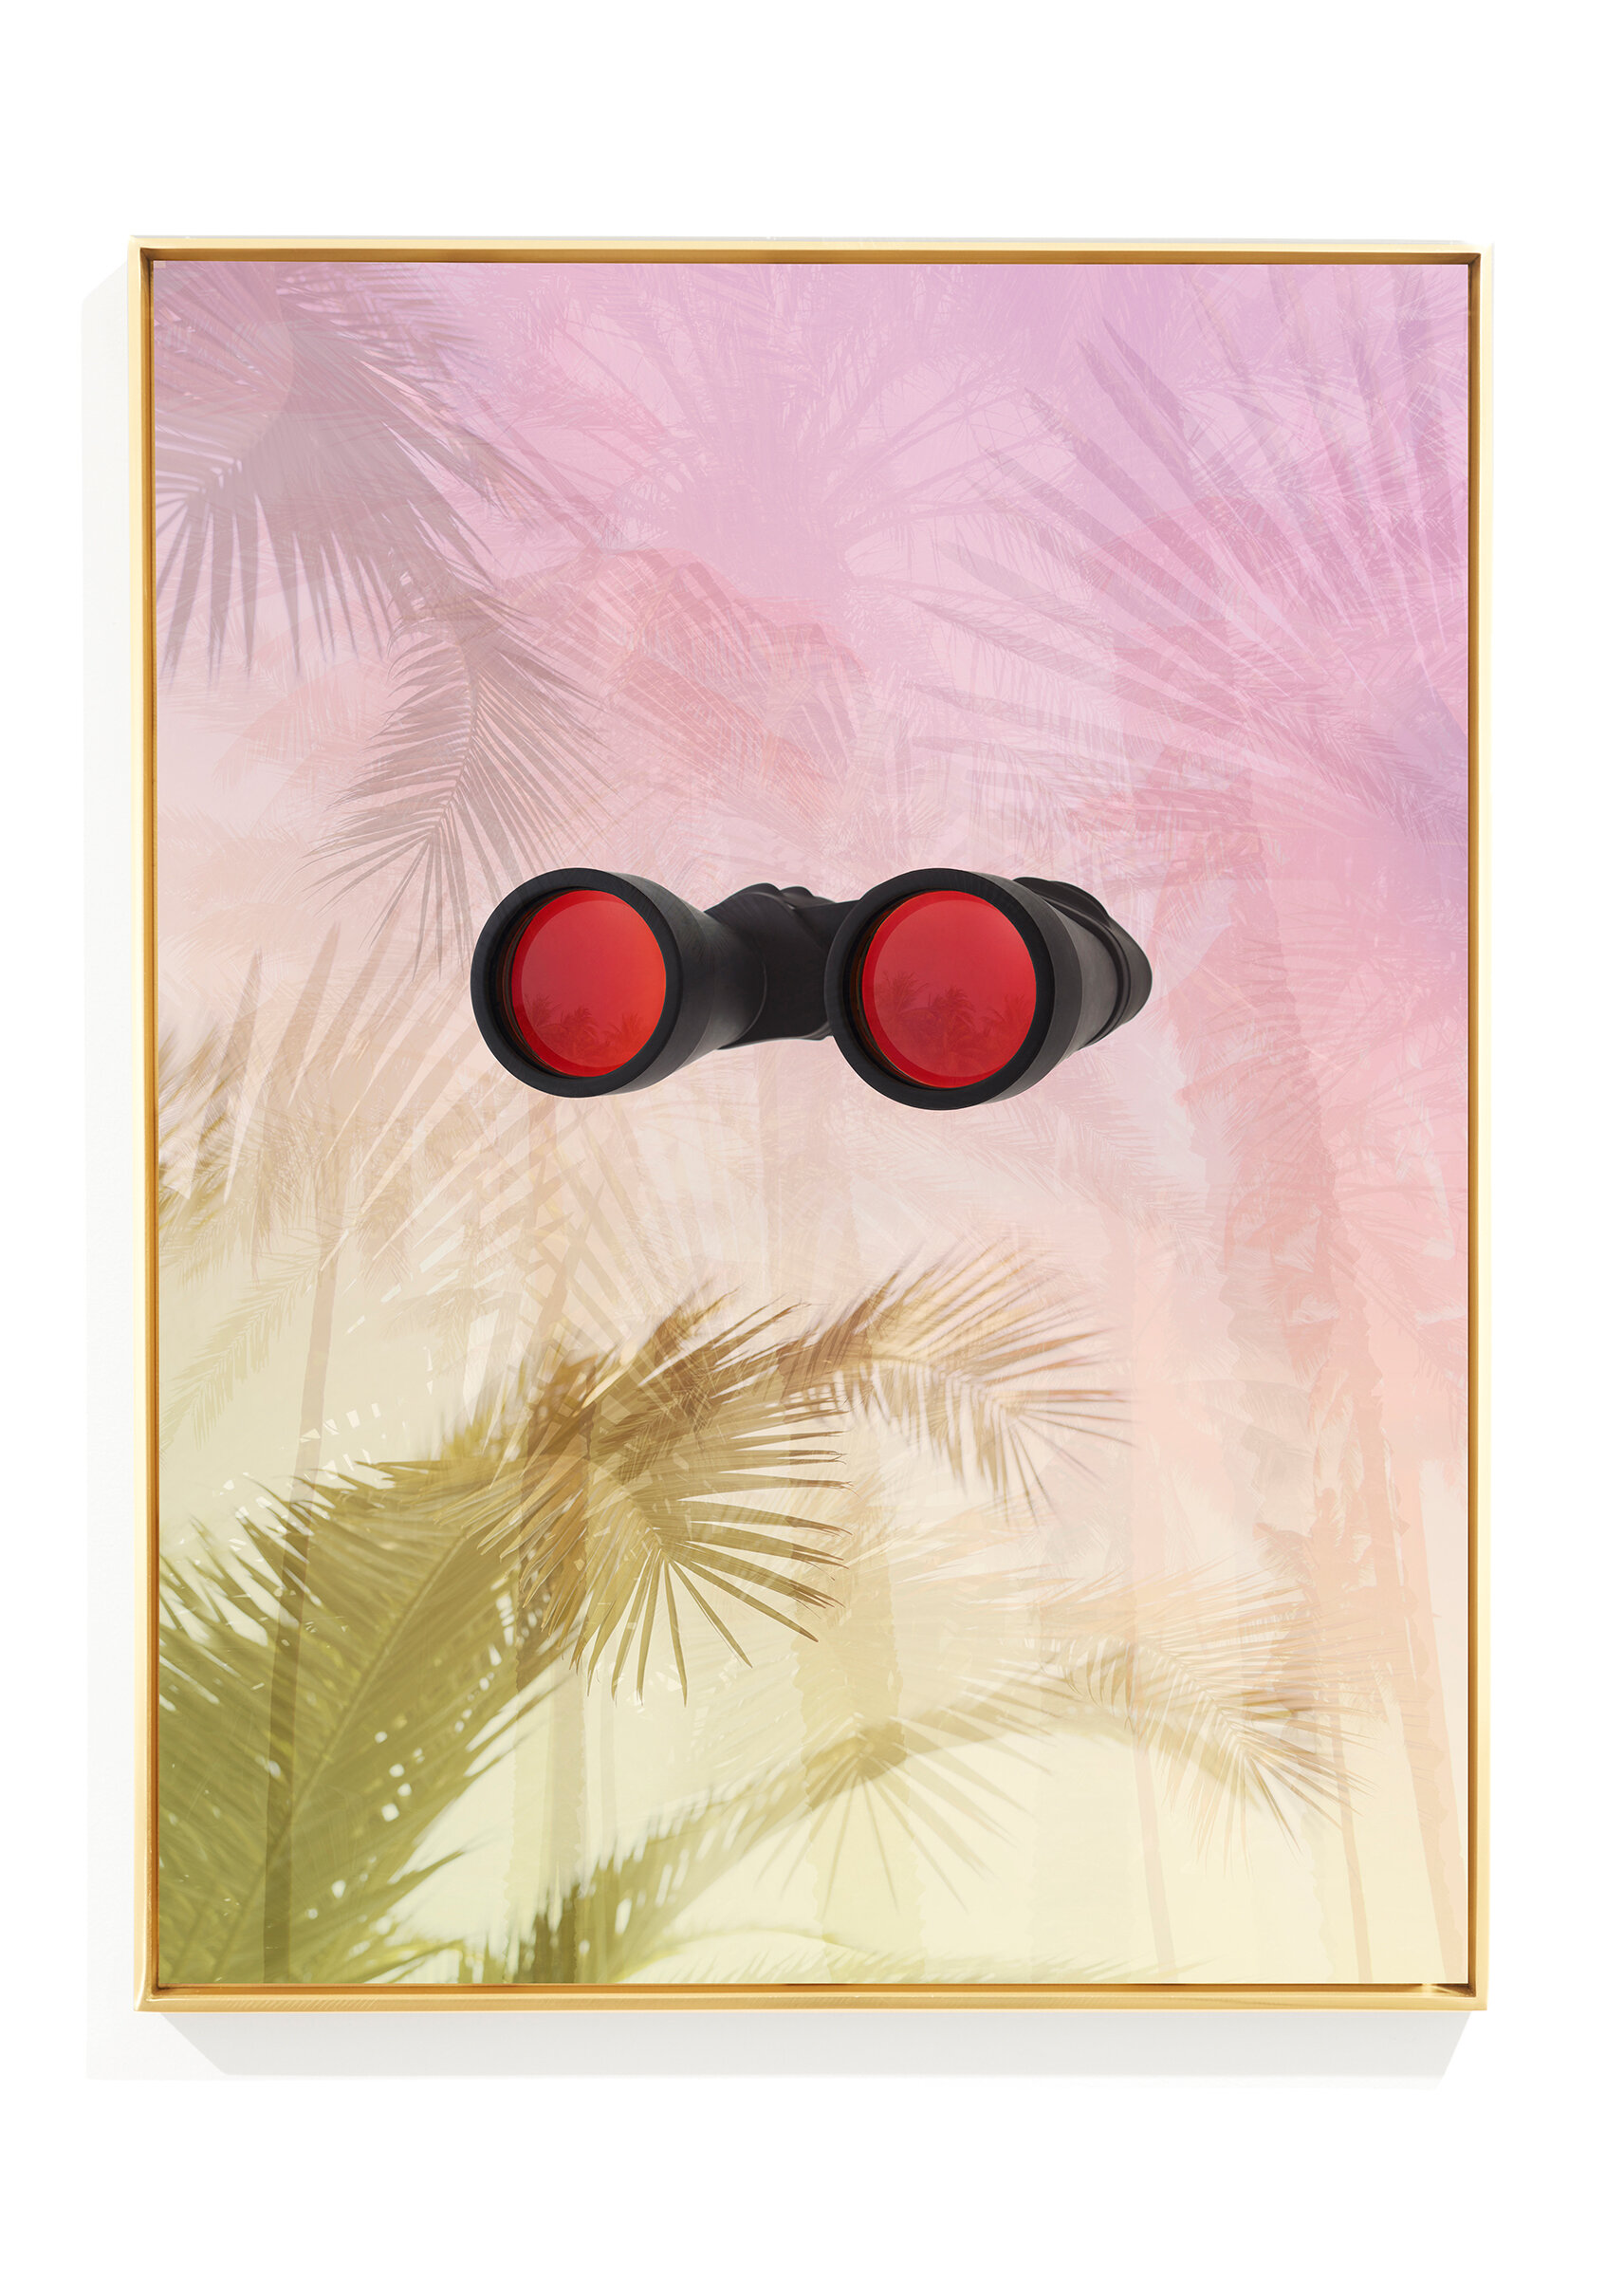 ClampArt_Joseph-Desler-Costa_BinocularTropical_2017_Dye-Sublimation-on-Aluminum-with-Polished-Brass-Frame_28x21inches-Edition-and-price-TBD.jpg